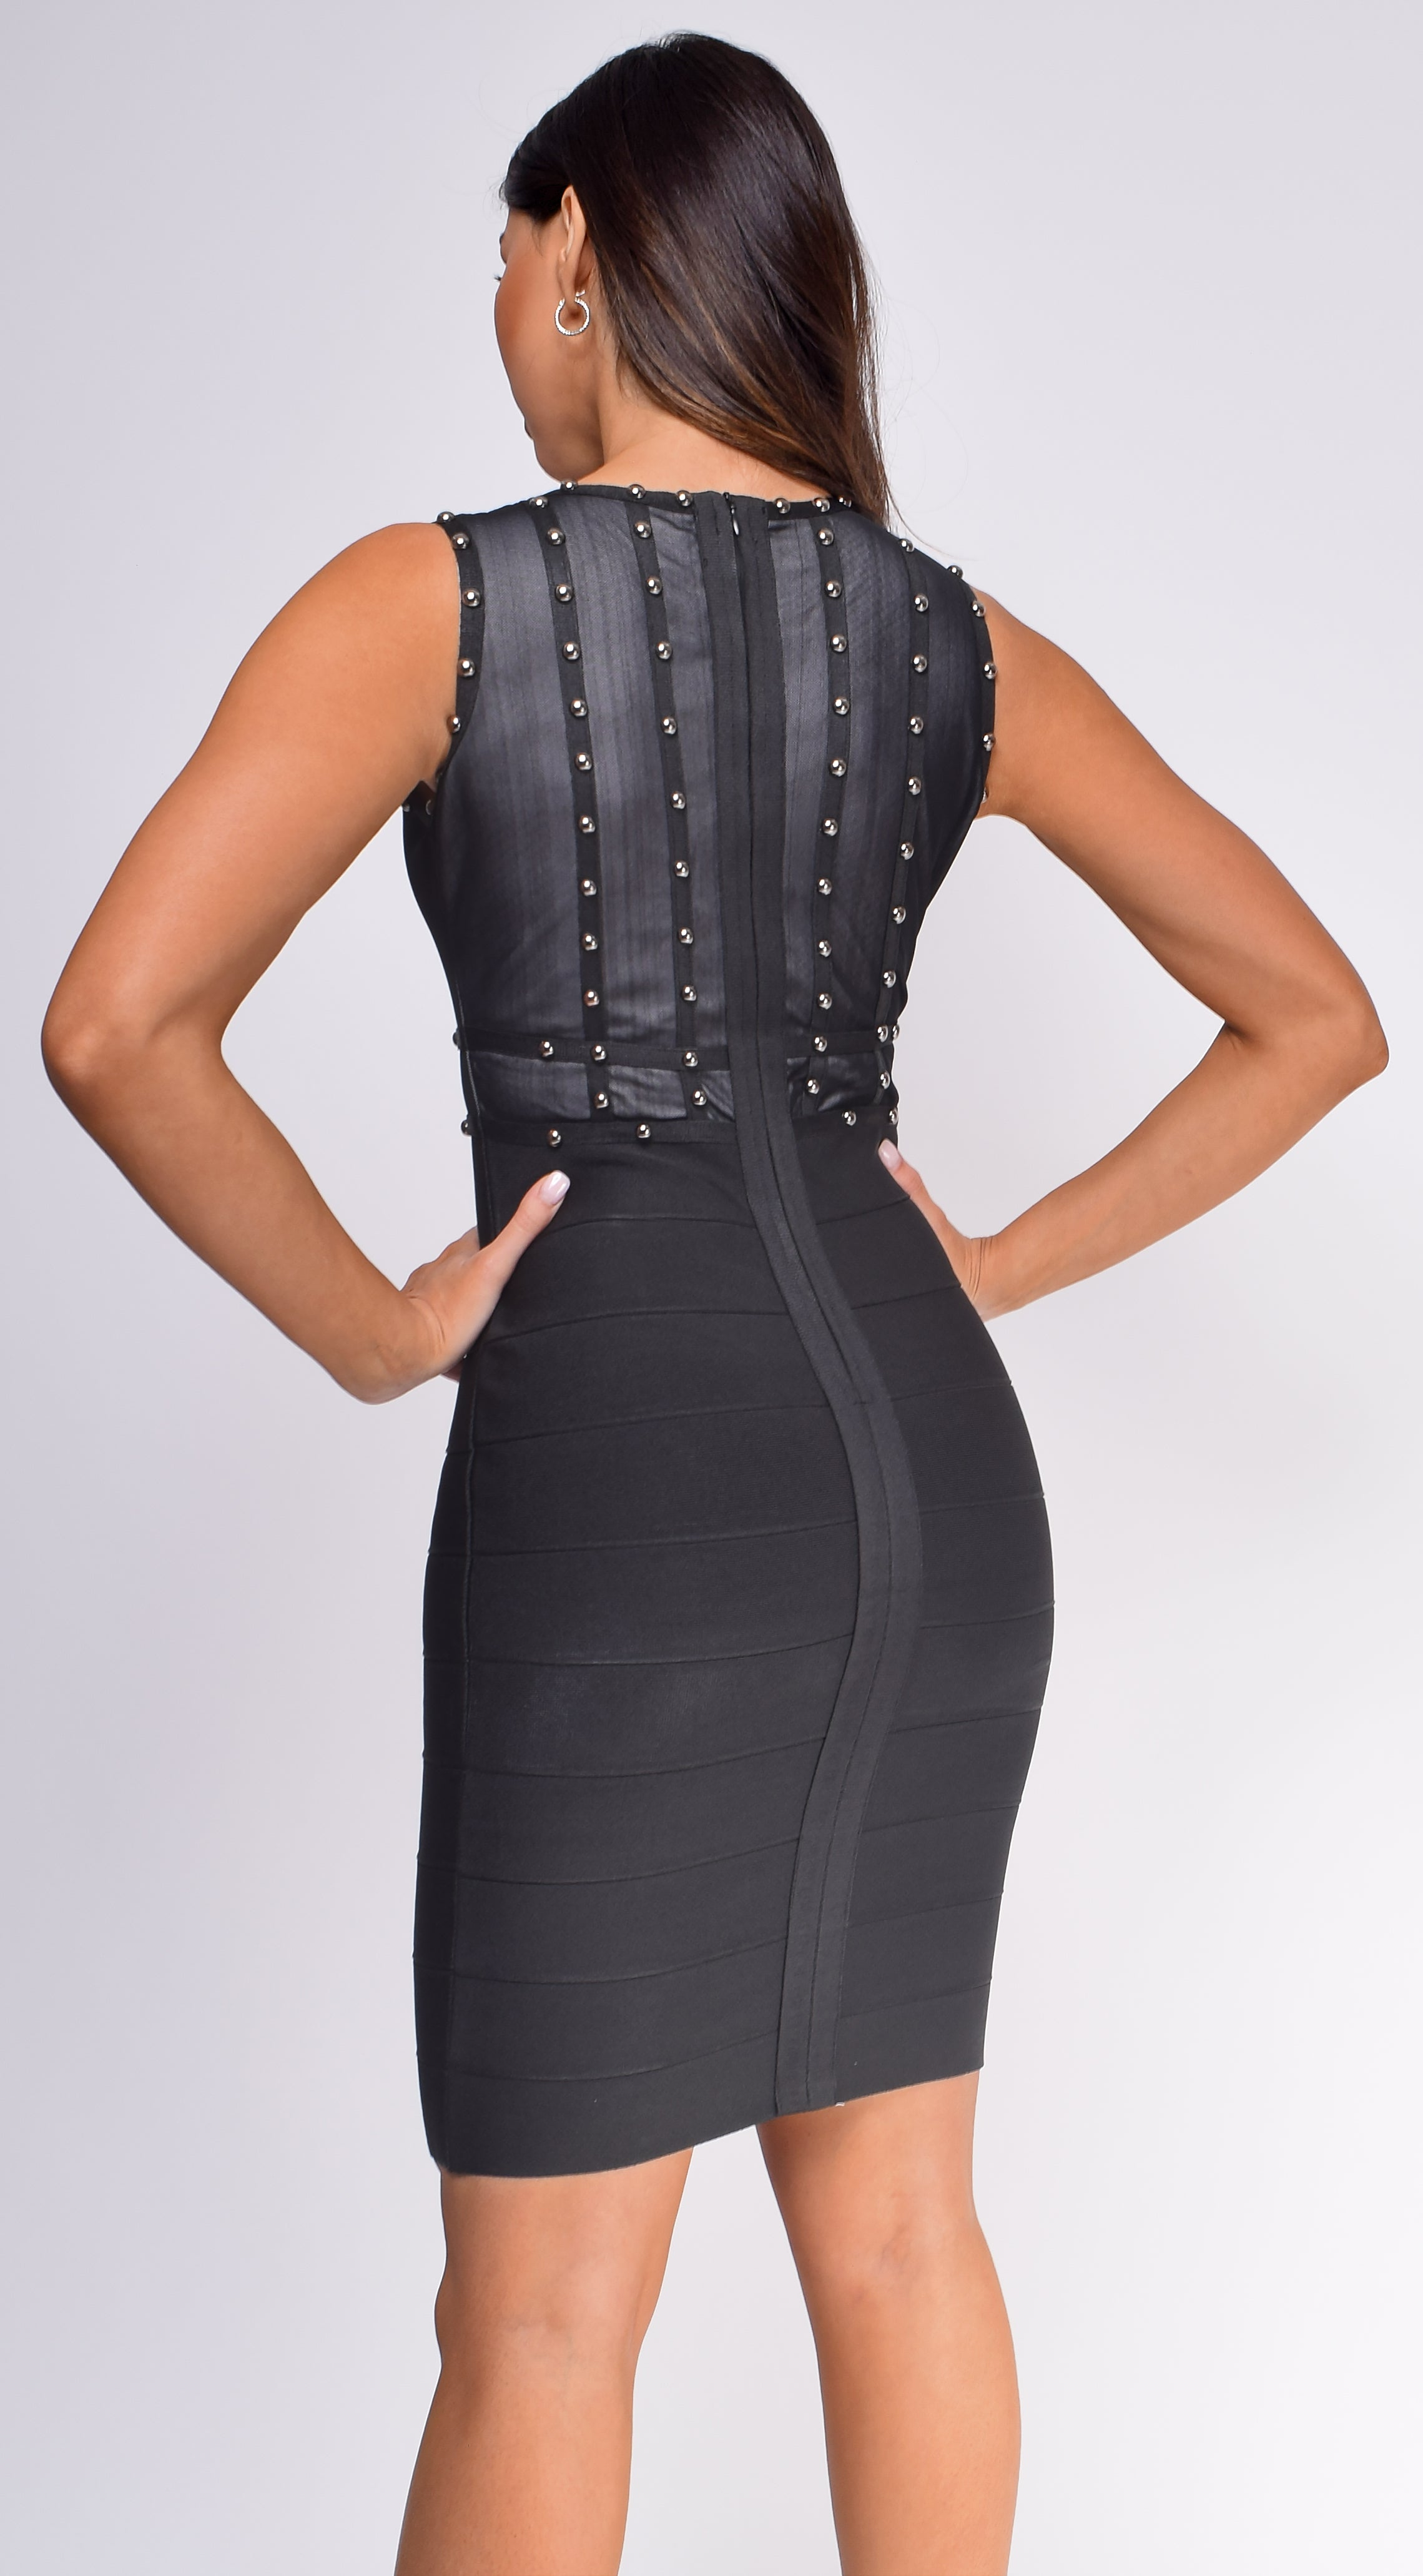 Azlynn Black Studded Bandage Dress